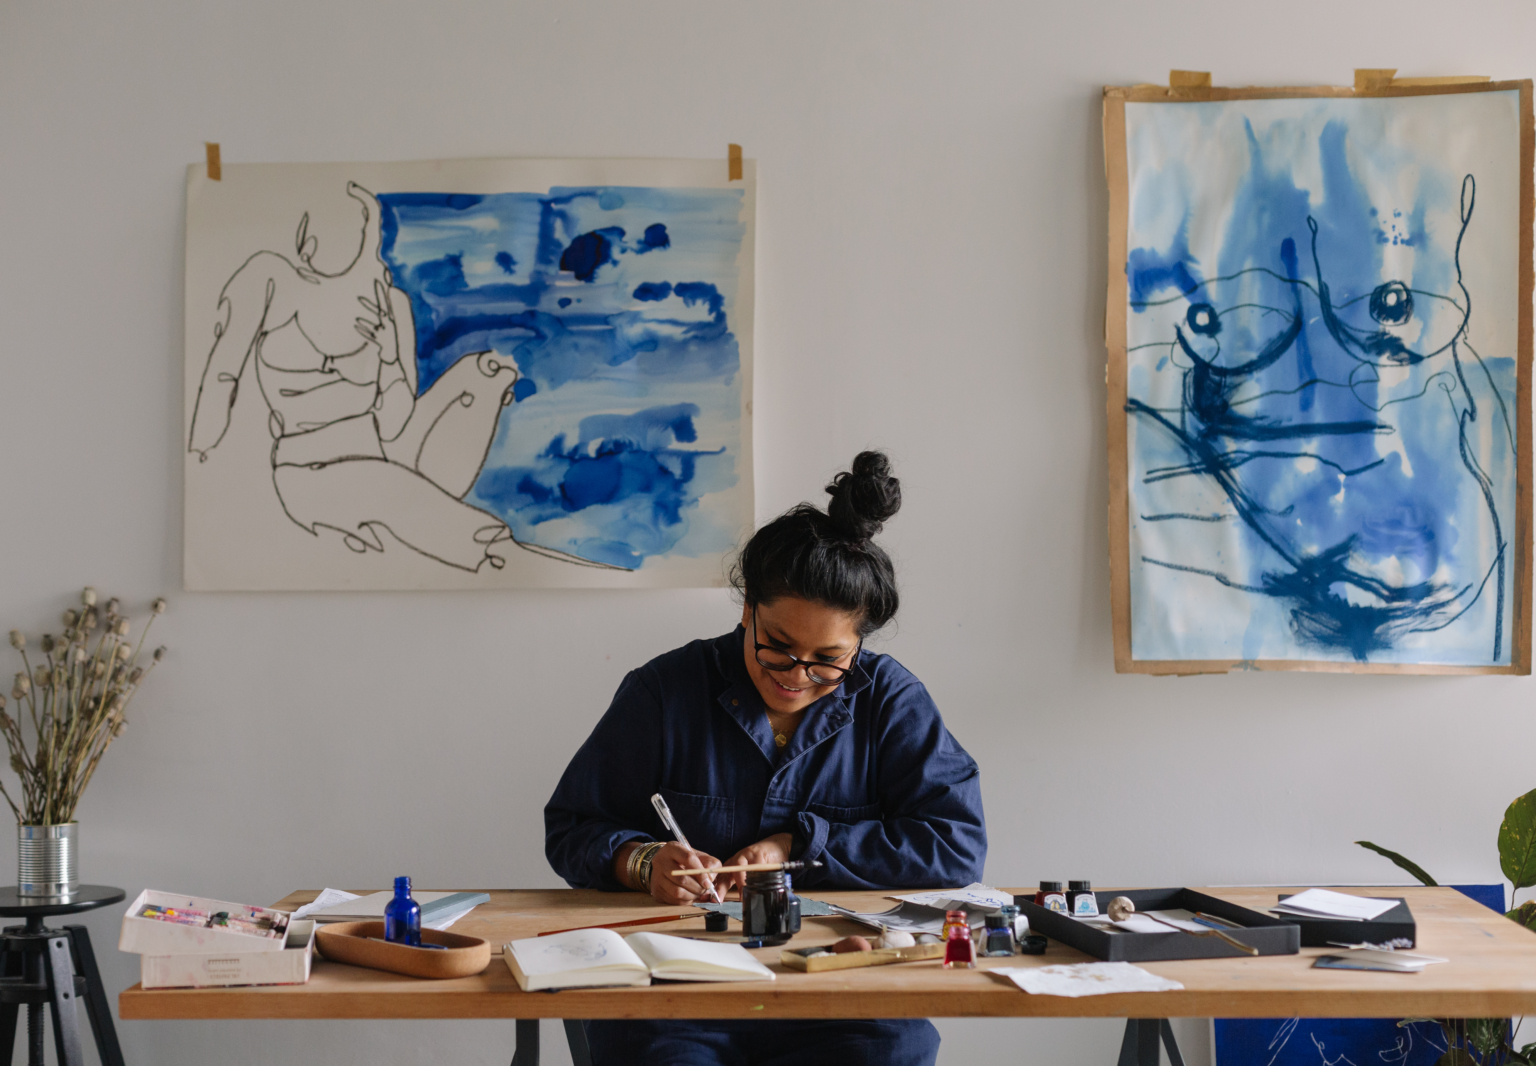 The Body in Blue: Laxmi Hussain's London Home and Studio Showcase Her Figural Art